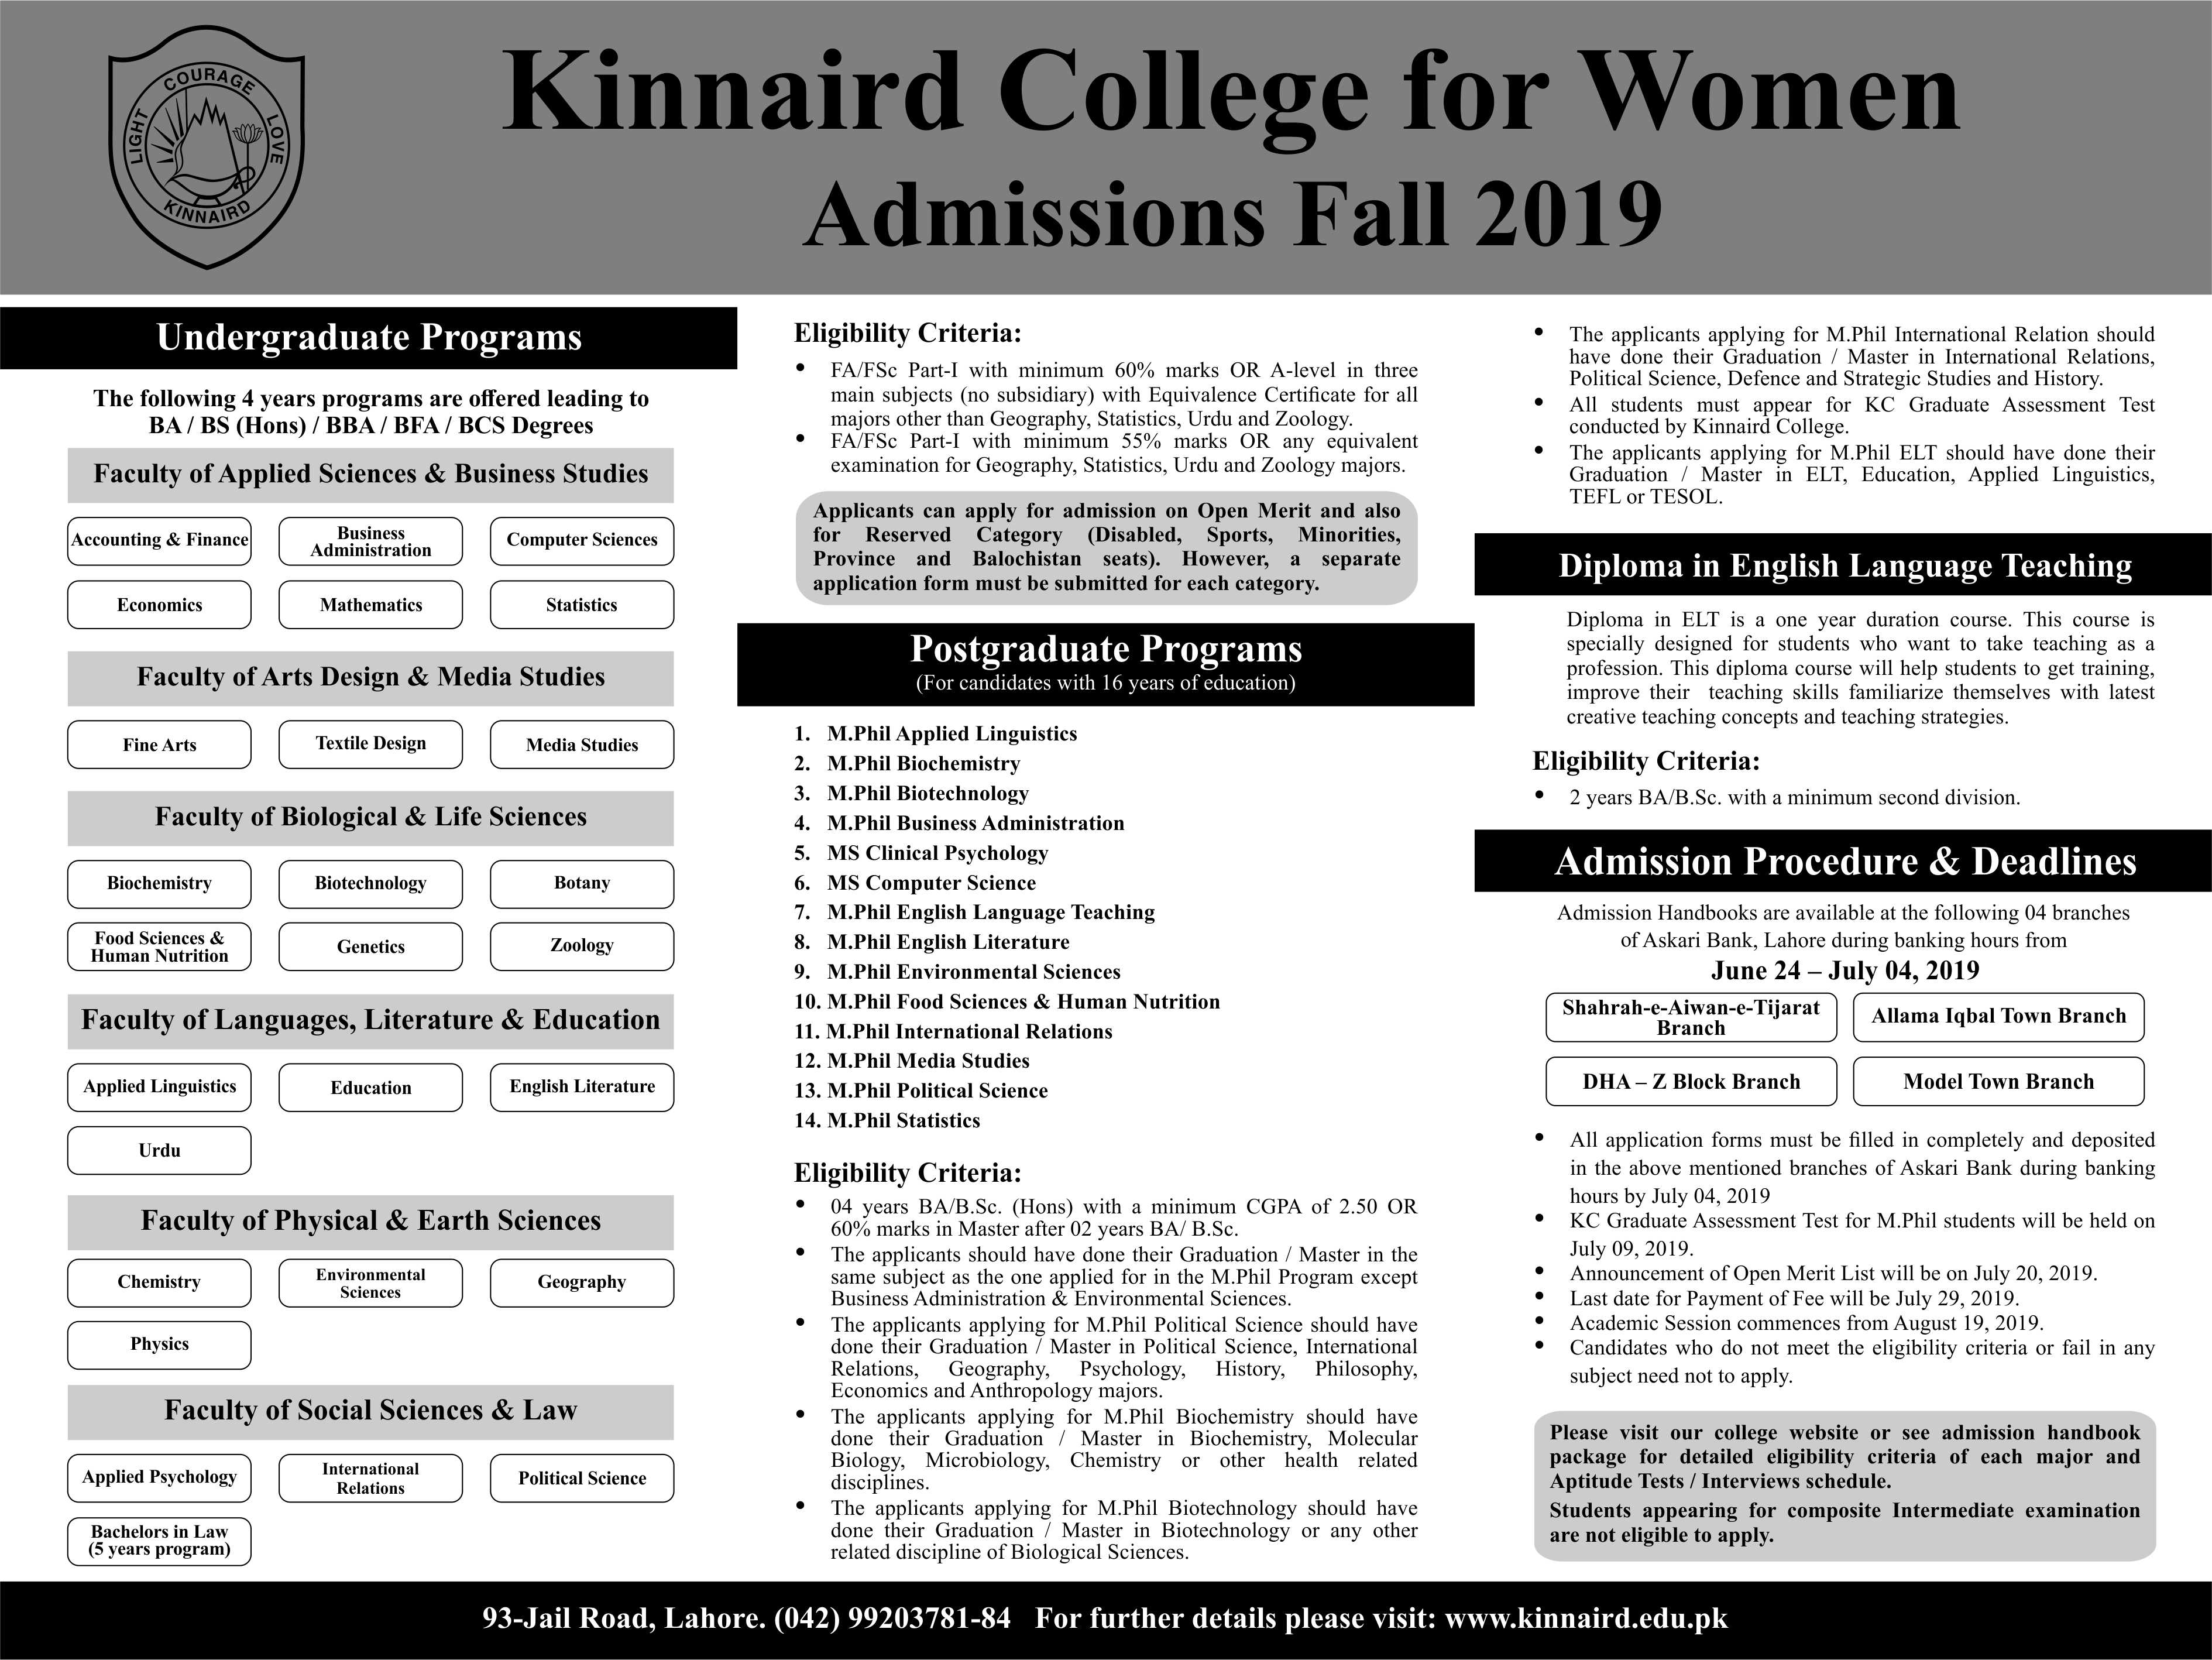 Kinnaird College For Women Admissions Fall 2019 Step